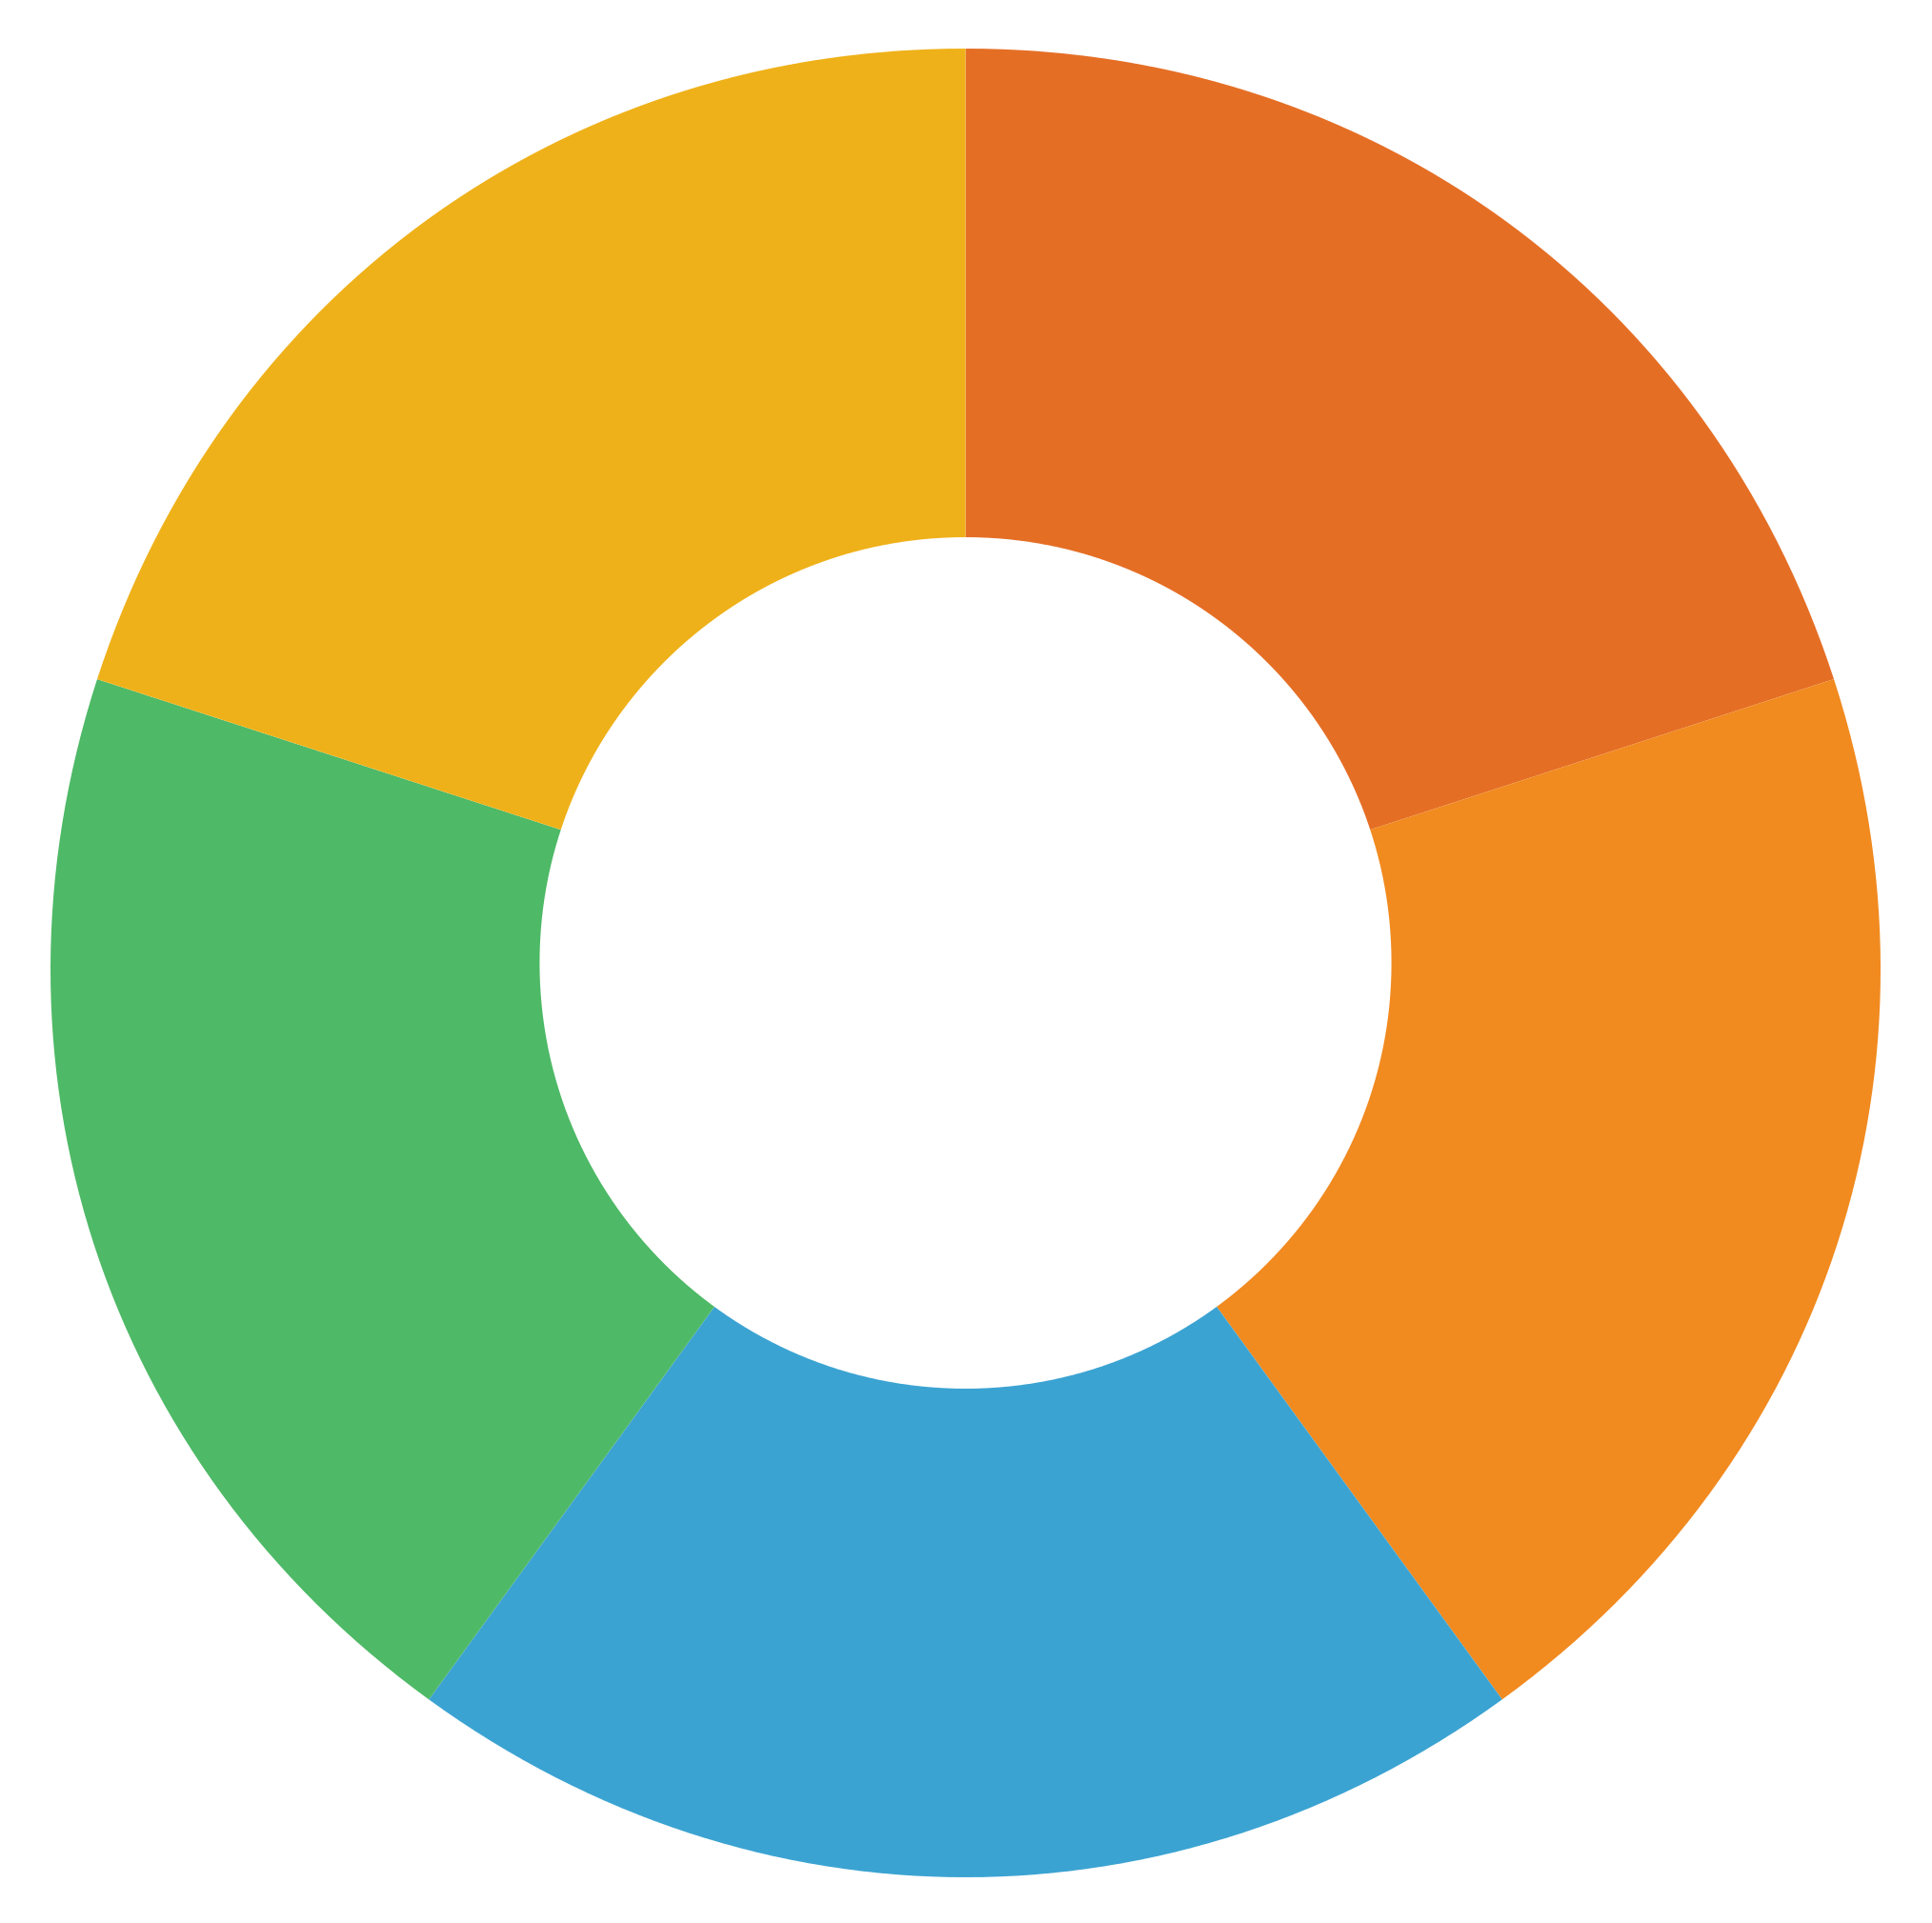 pie graph png